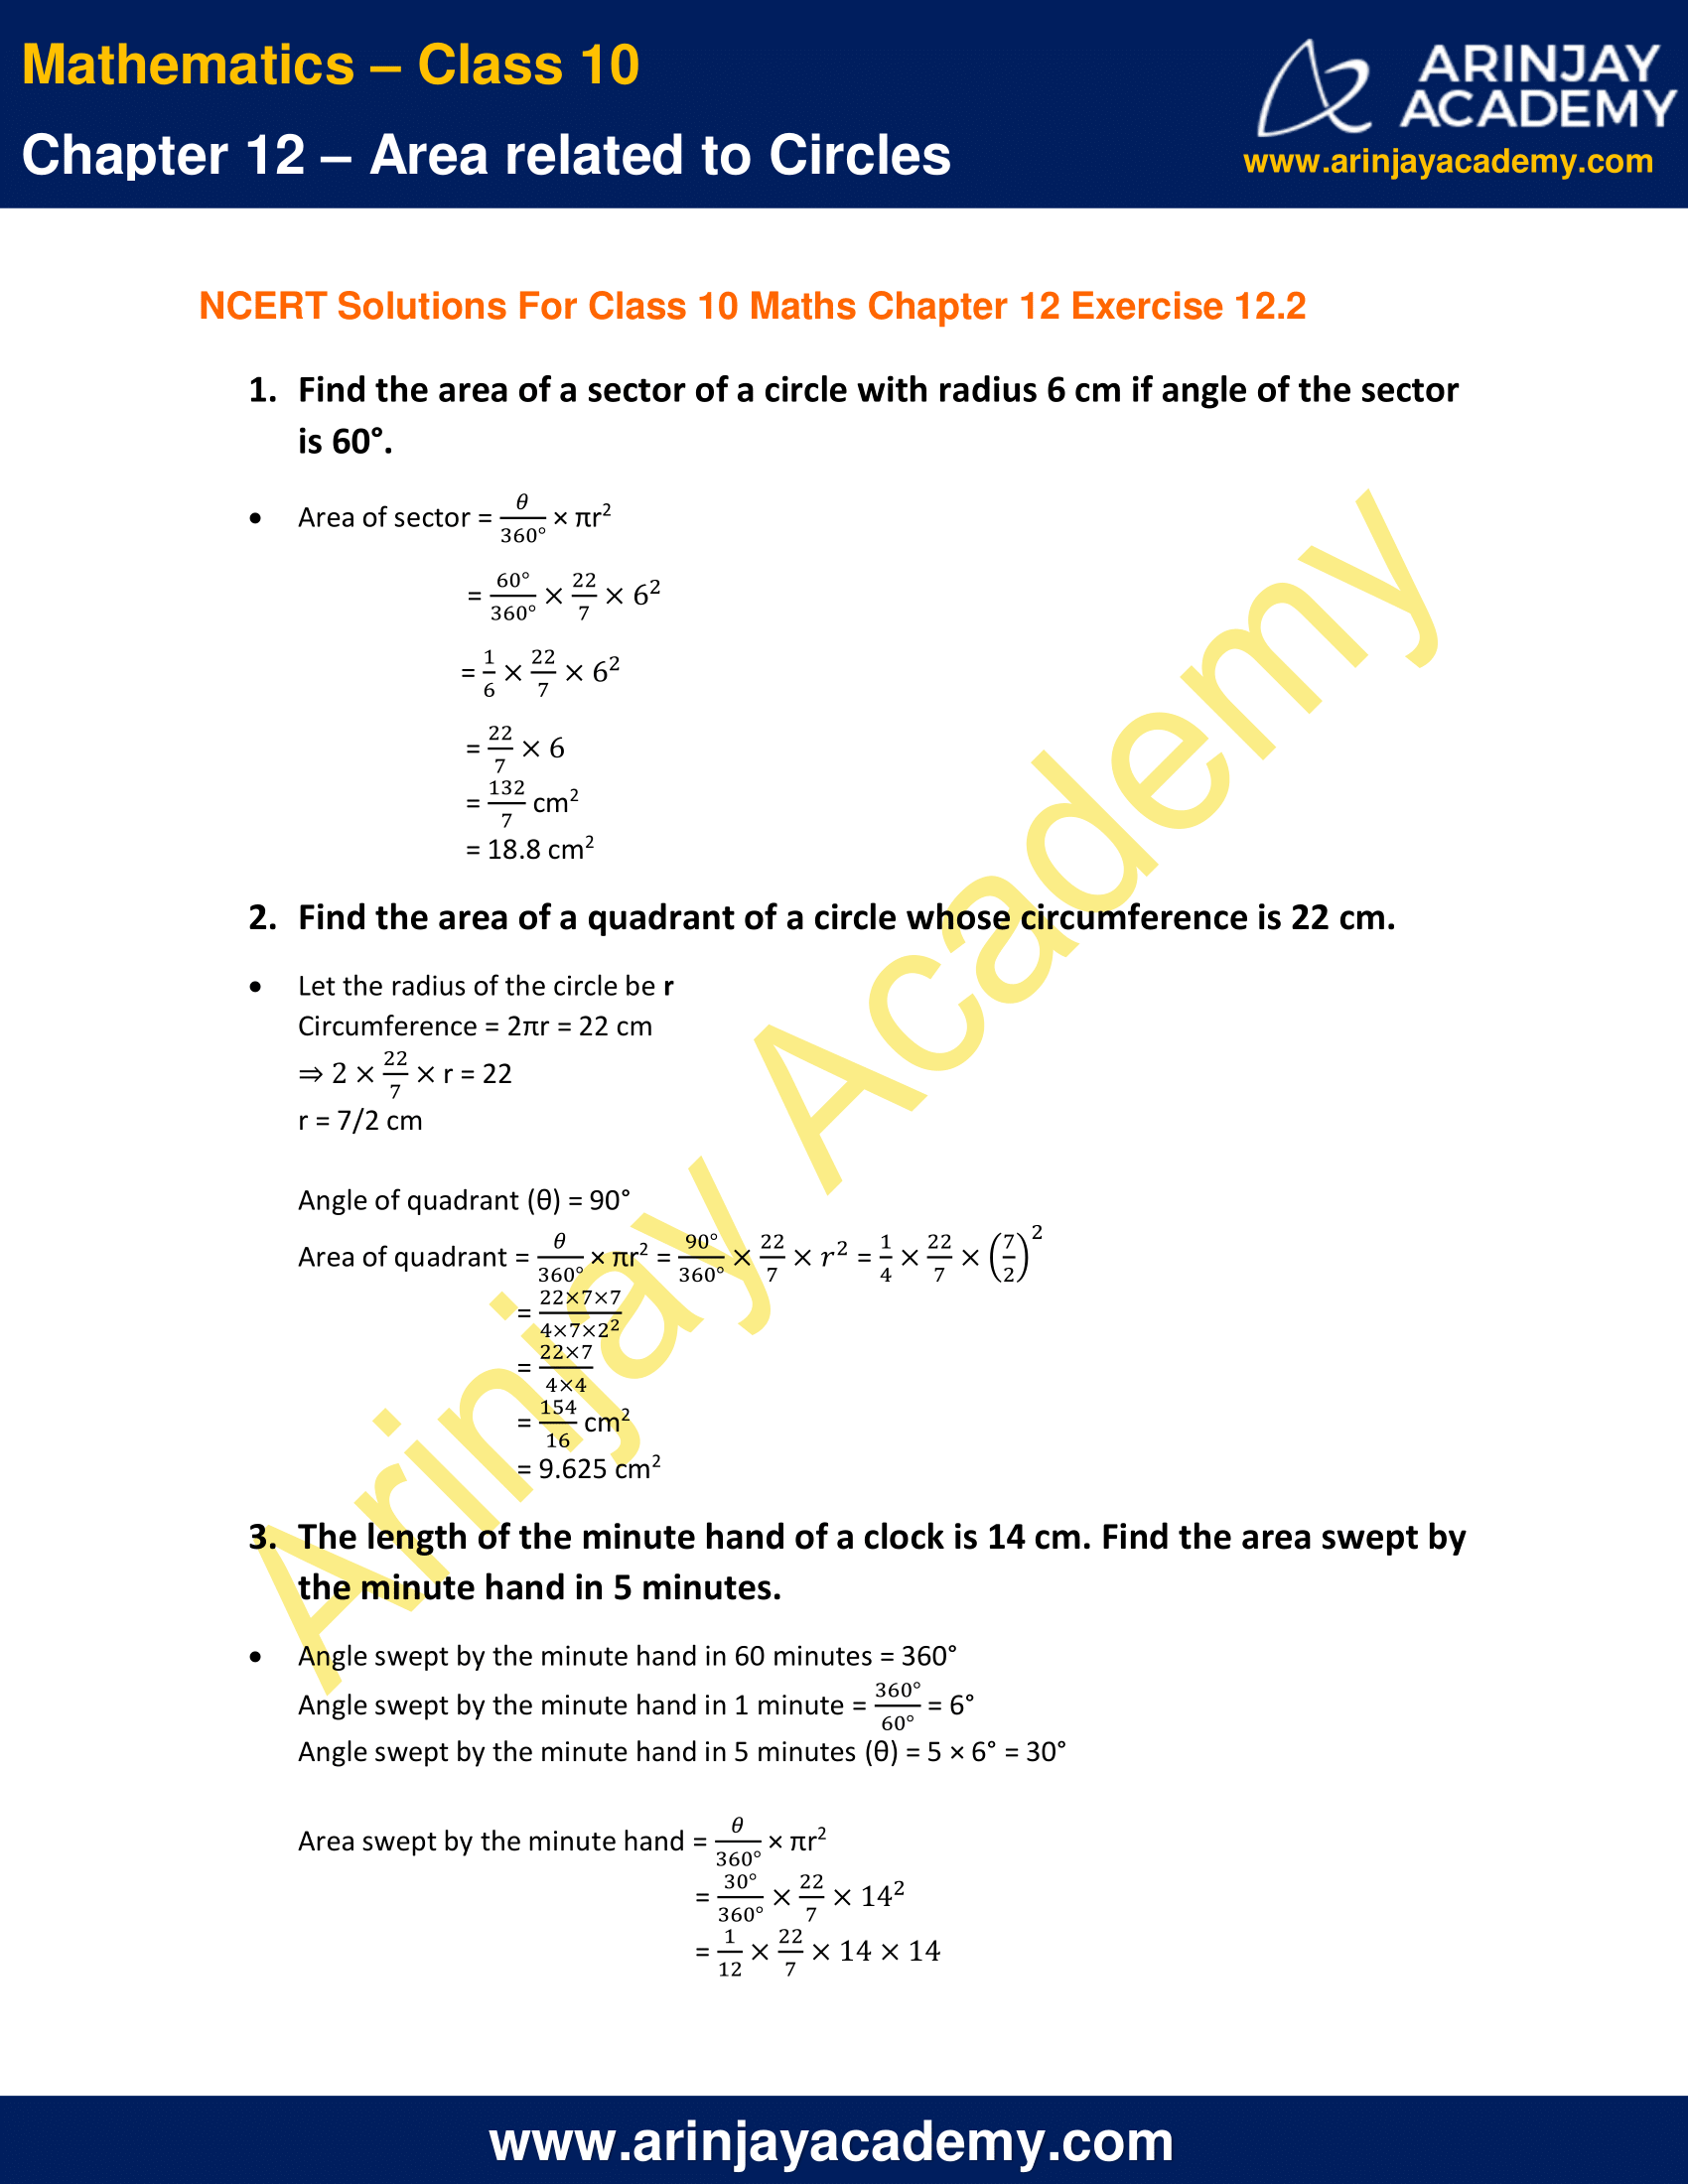 NCERT Solutions For Class 10 Maths Chapter 12 Exercise 12.2 image 1